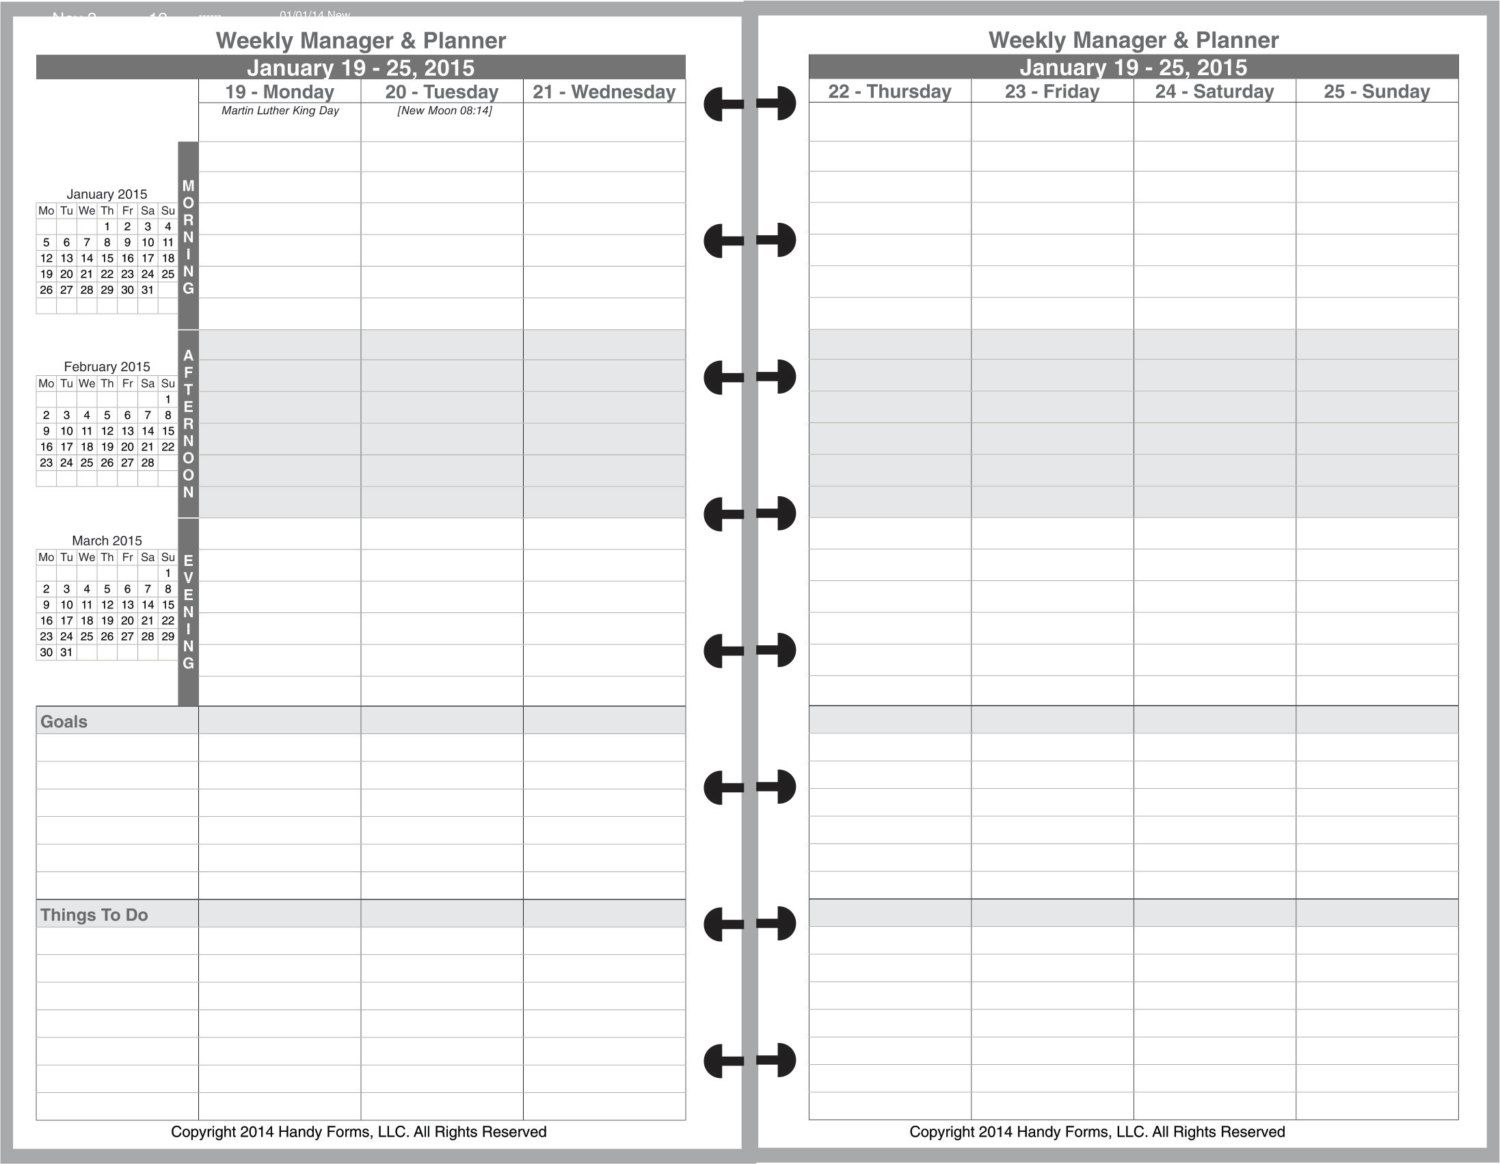 Weekly Manager Planner Organizer  Page Per Week  By Handyforms